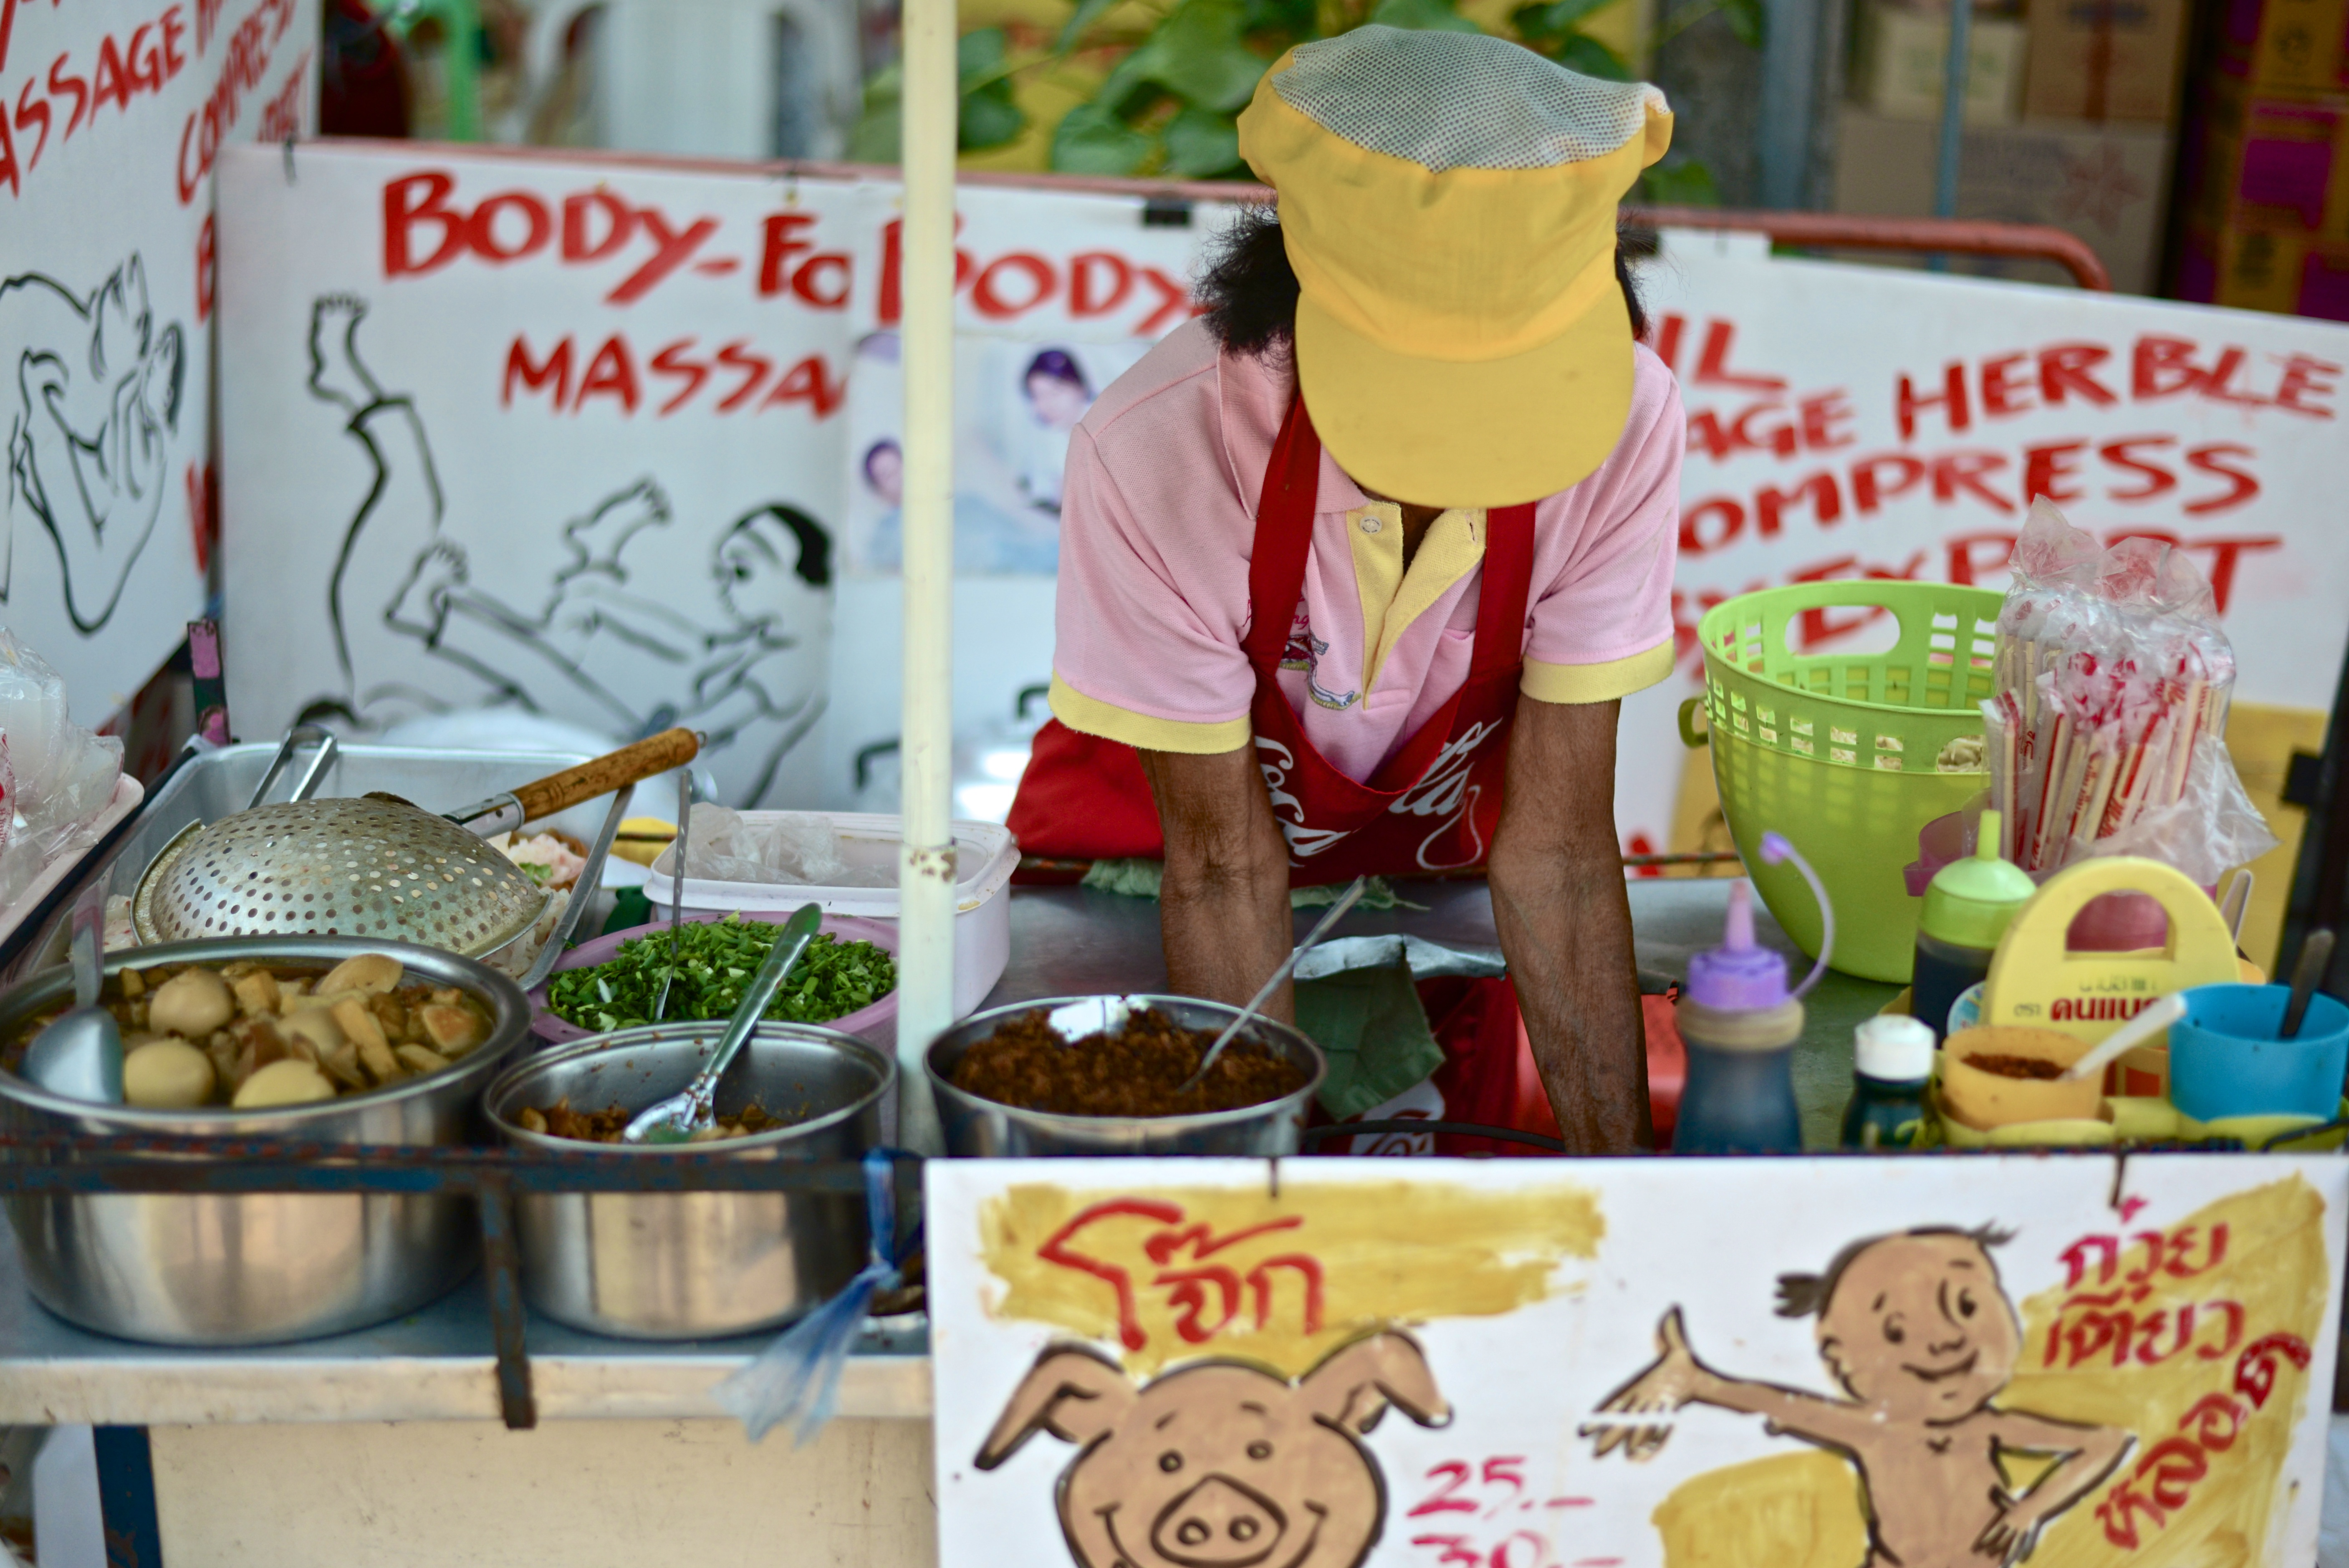 A curious juxtaposition of massage and food.